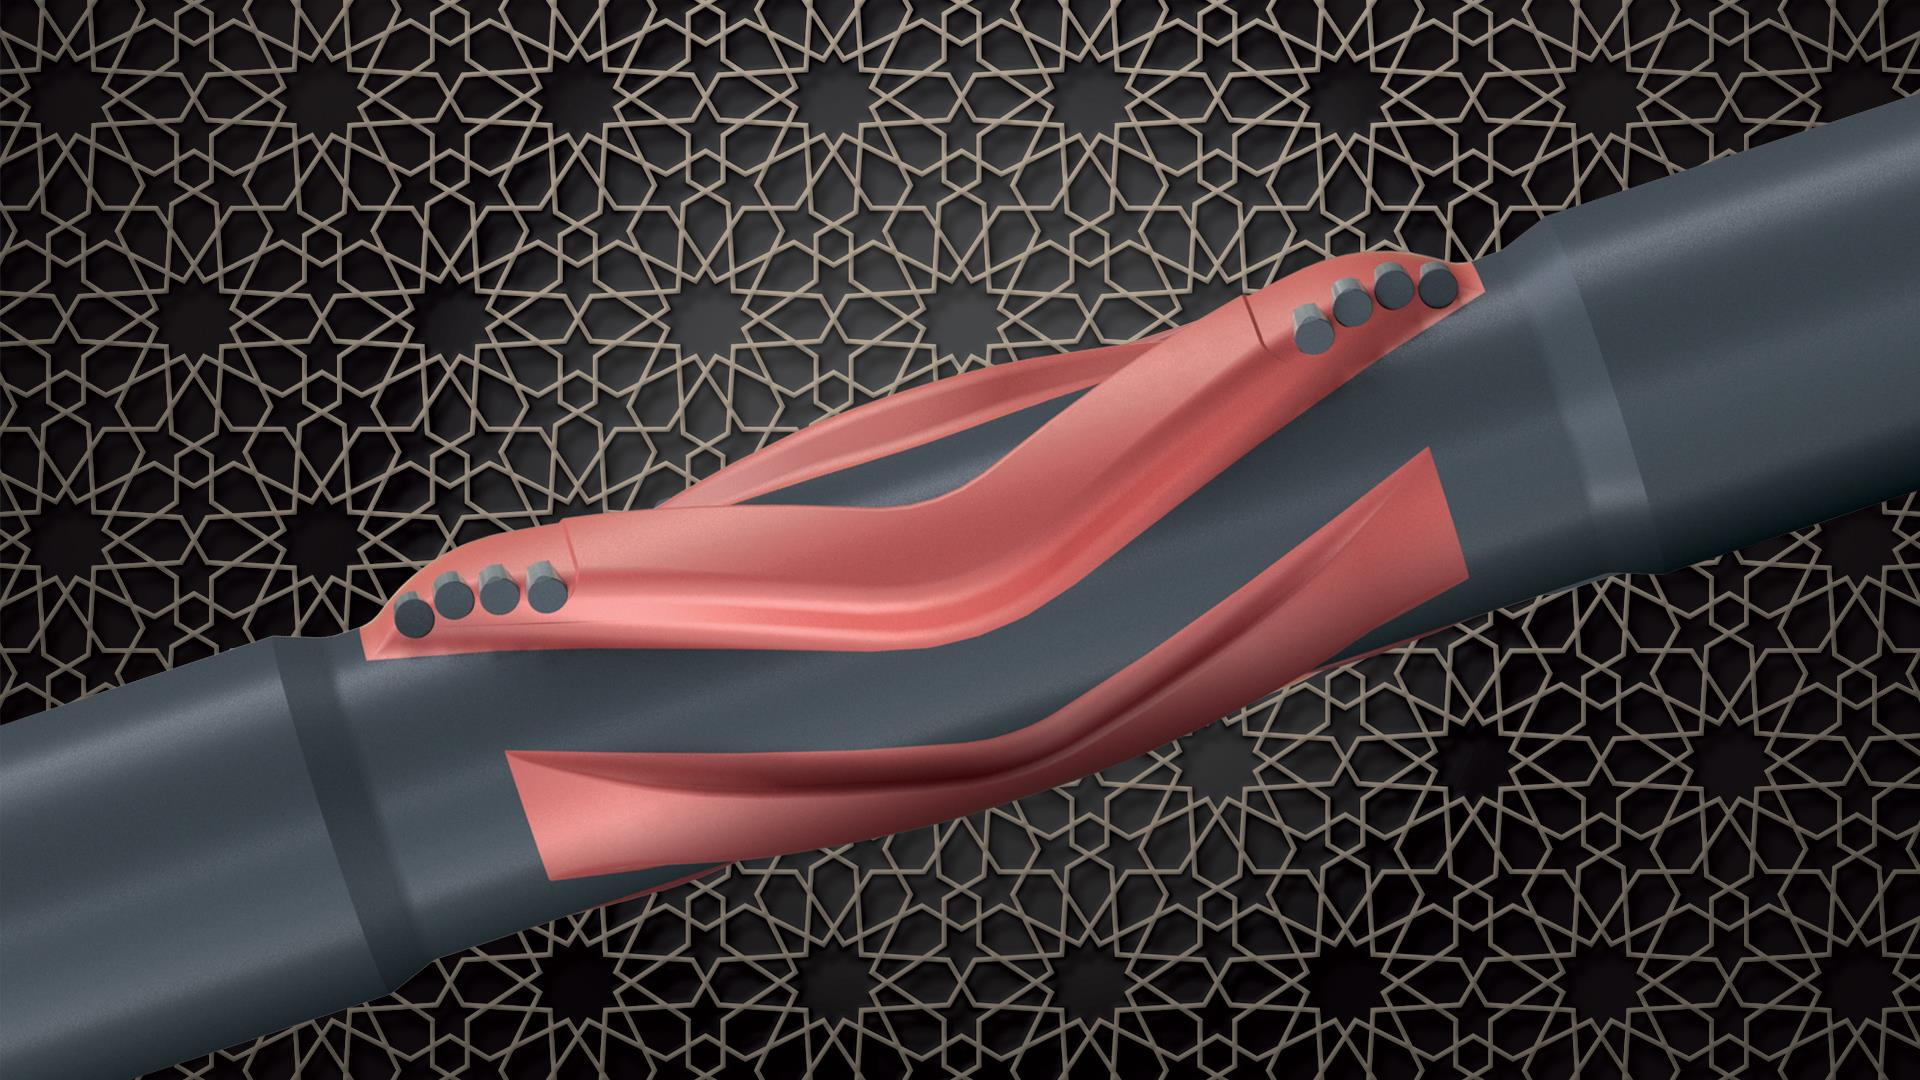 3D render of the Falcon Reamer against a stylized background